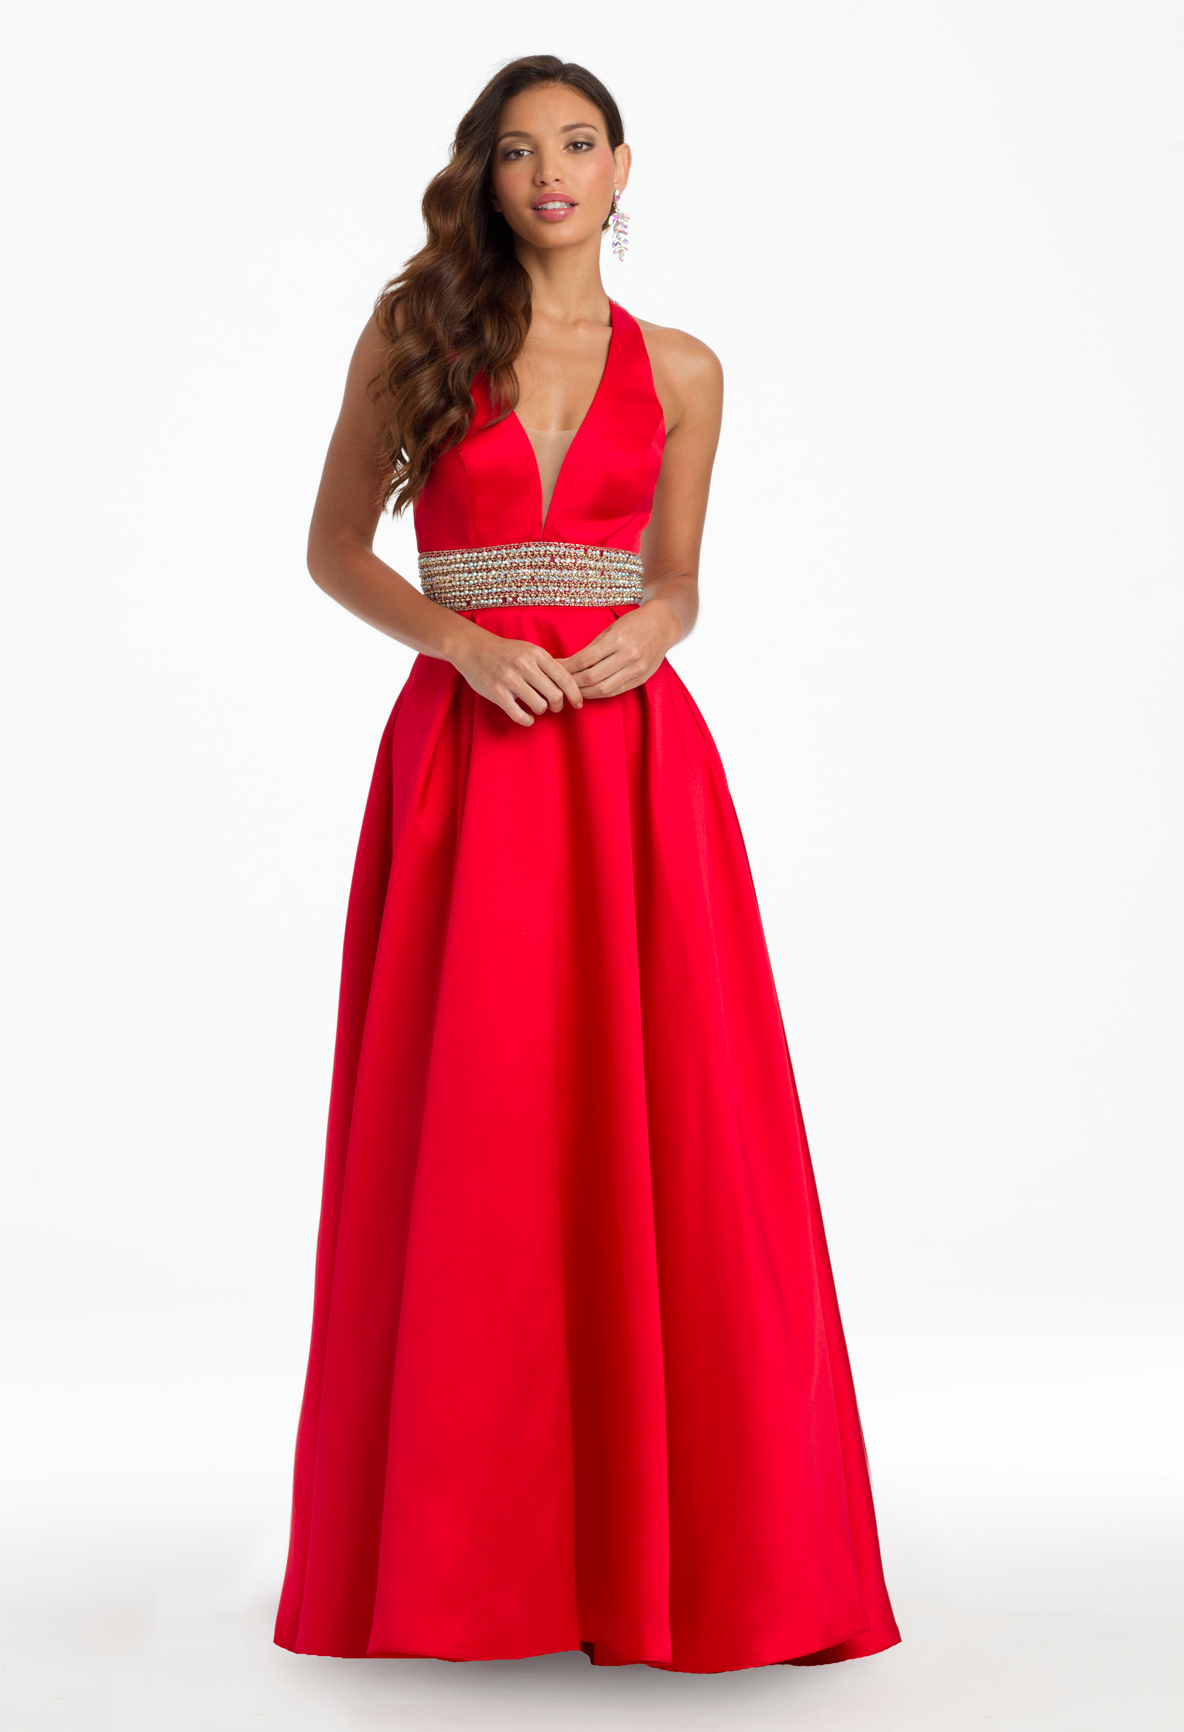 Brooklyn u baileyus picks this ball gown dress is a gorgeous choice